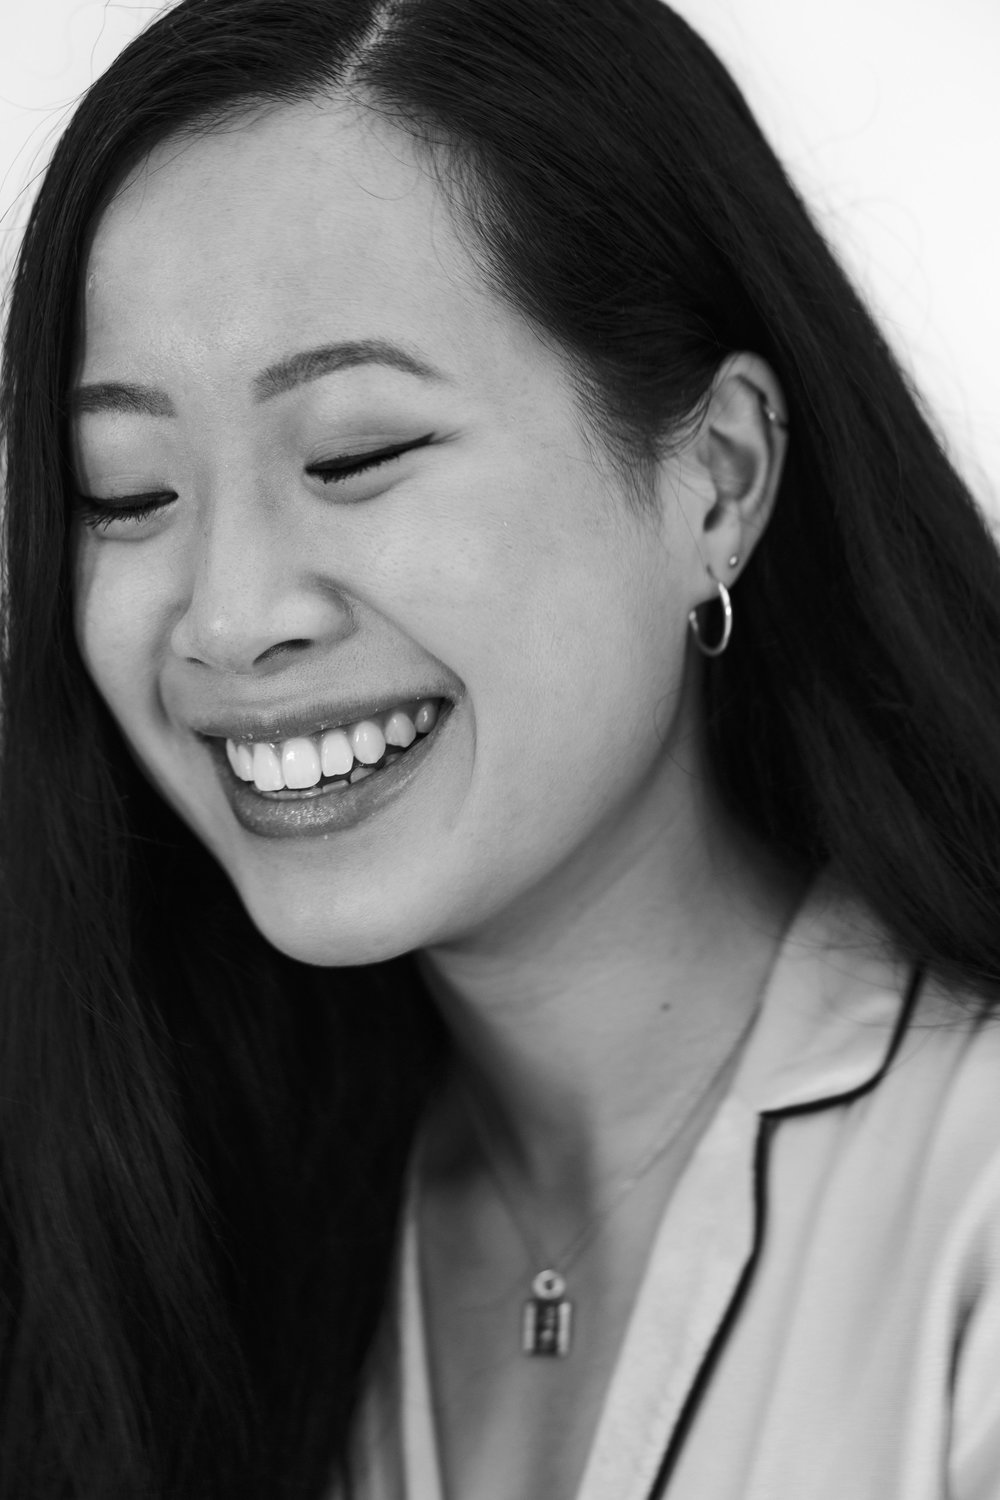 Yennhi Le | Event Hostess   Yennhi is a Fashion Management & Textiles student at Amsterdam's AMFI who's obsessed with sustainability. Yennhi is incredibly intelligent and has been in our team since day one. Take a look at  Yennhi's creative portfolio .